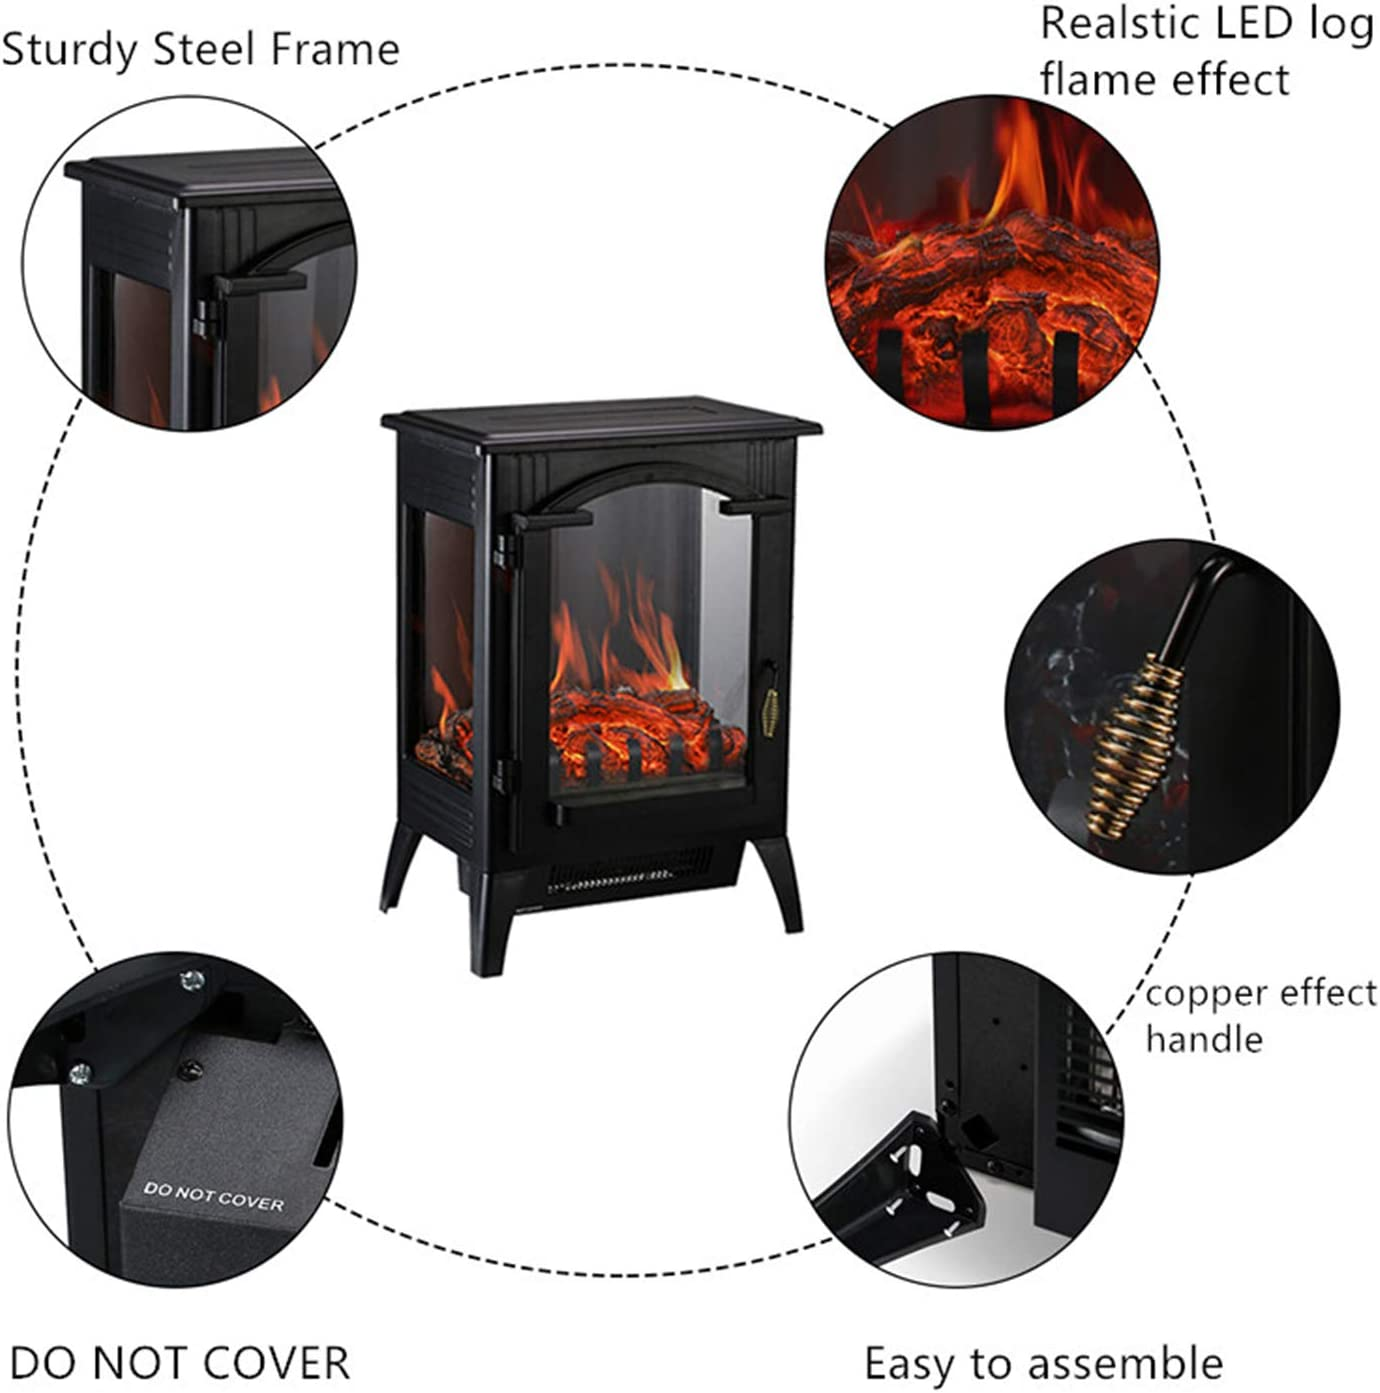 Wonlink Portable Electric Fireplace Heater,2 Element Quartz Infrared Space Heater with 3D Flame Effect